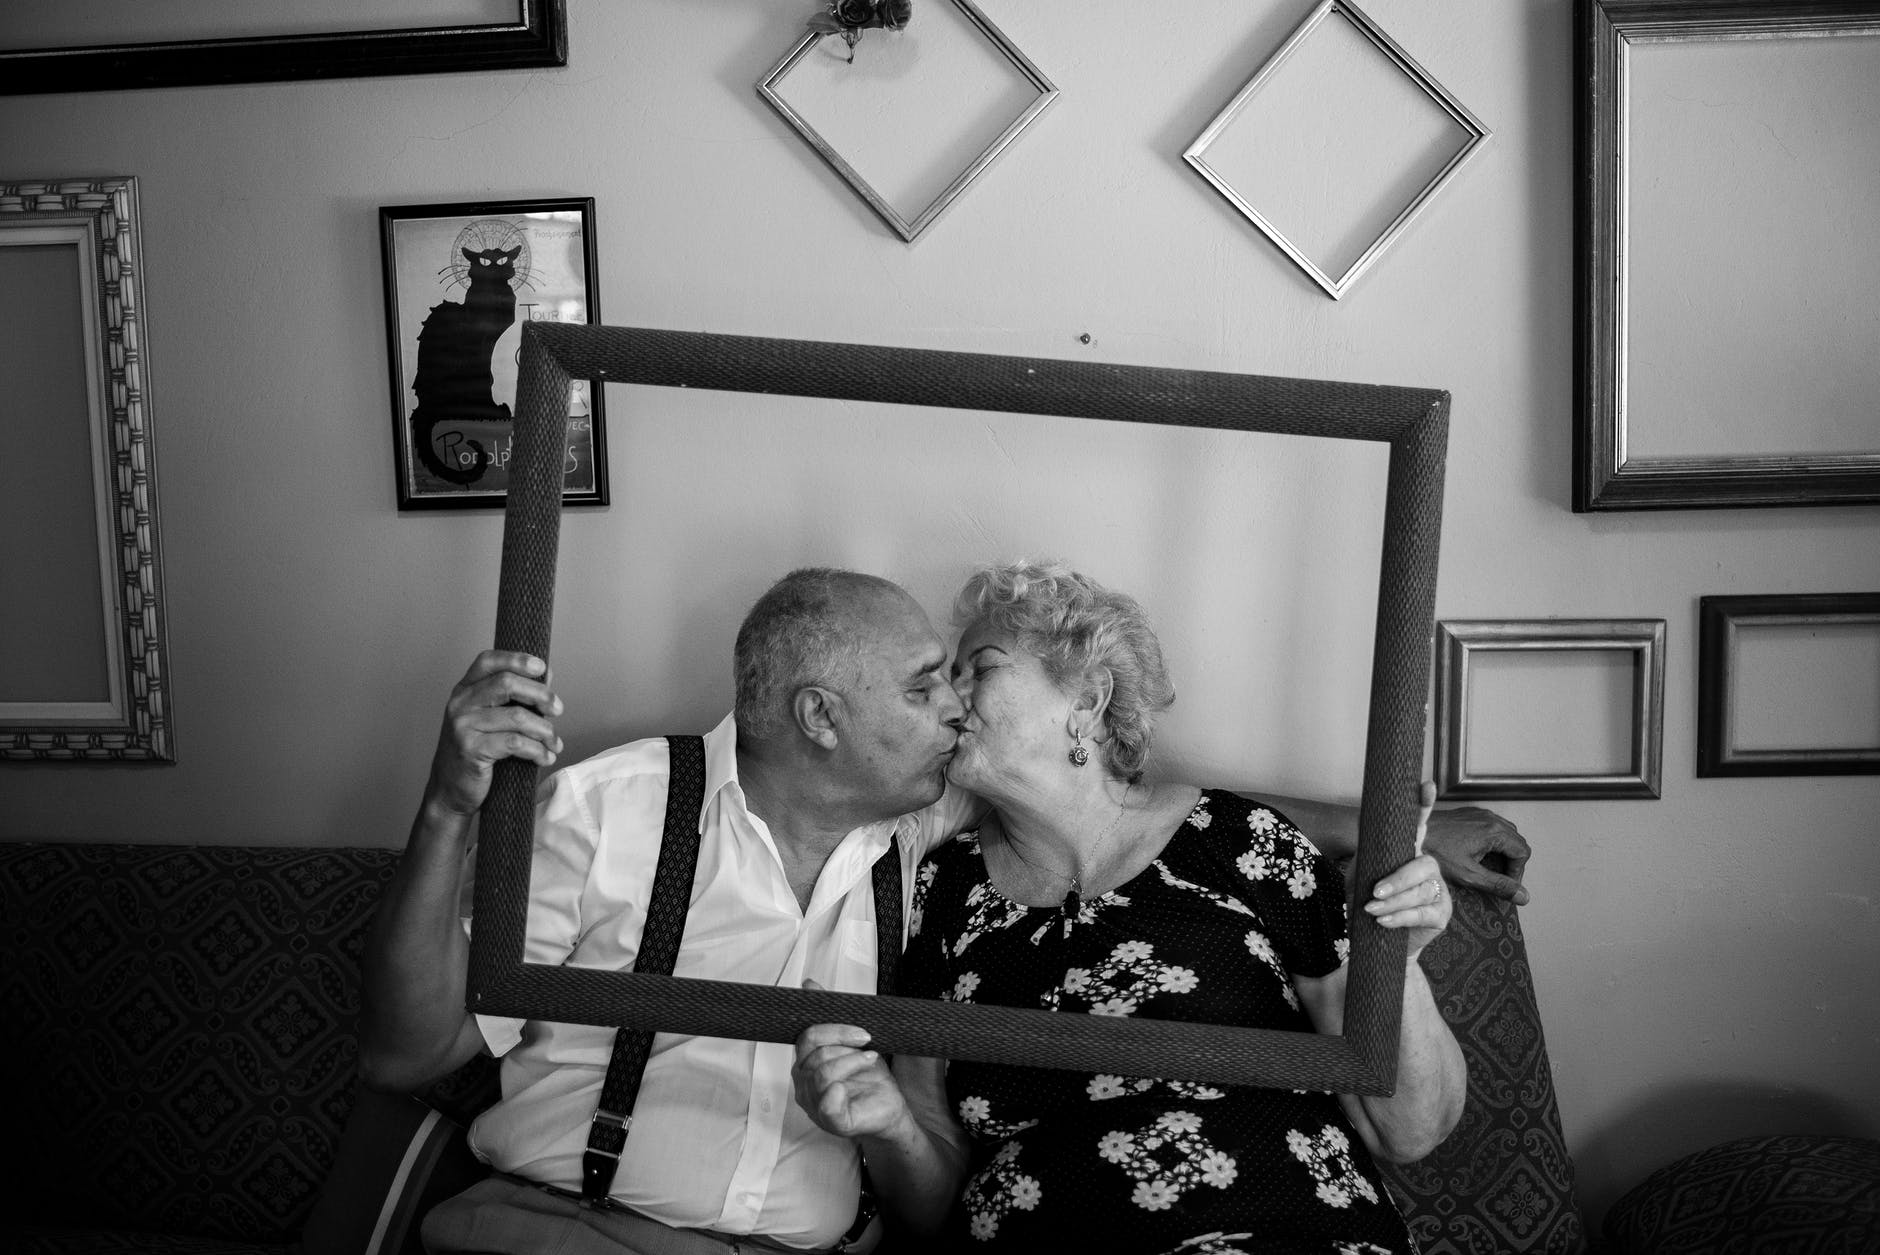 grayscale photo of couple holding frame while kissing